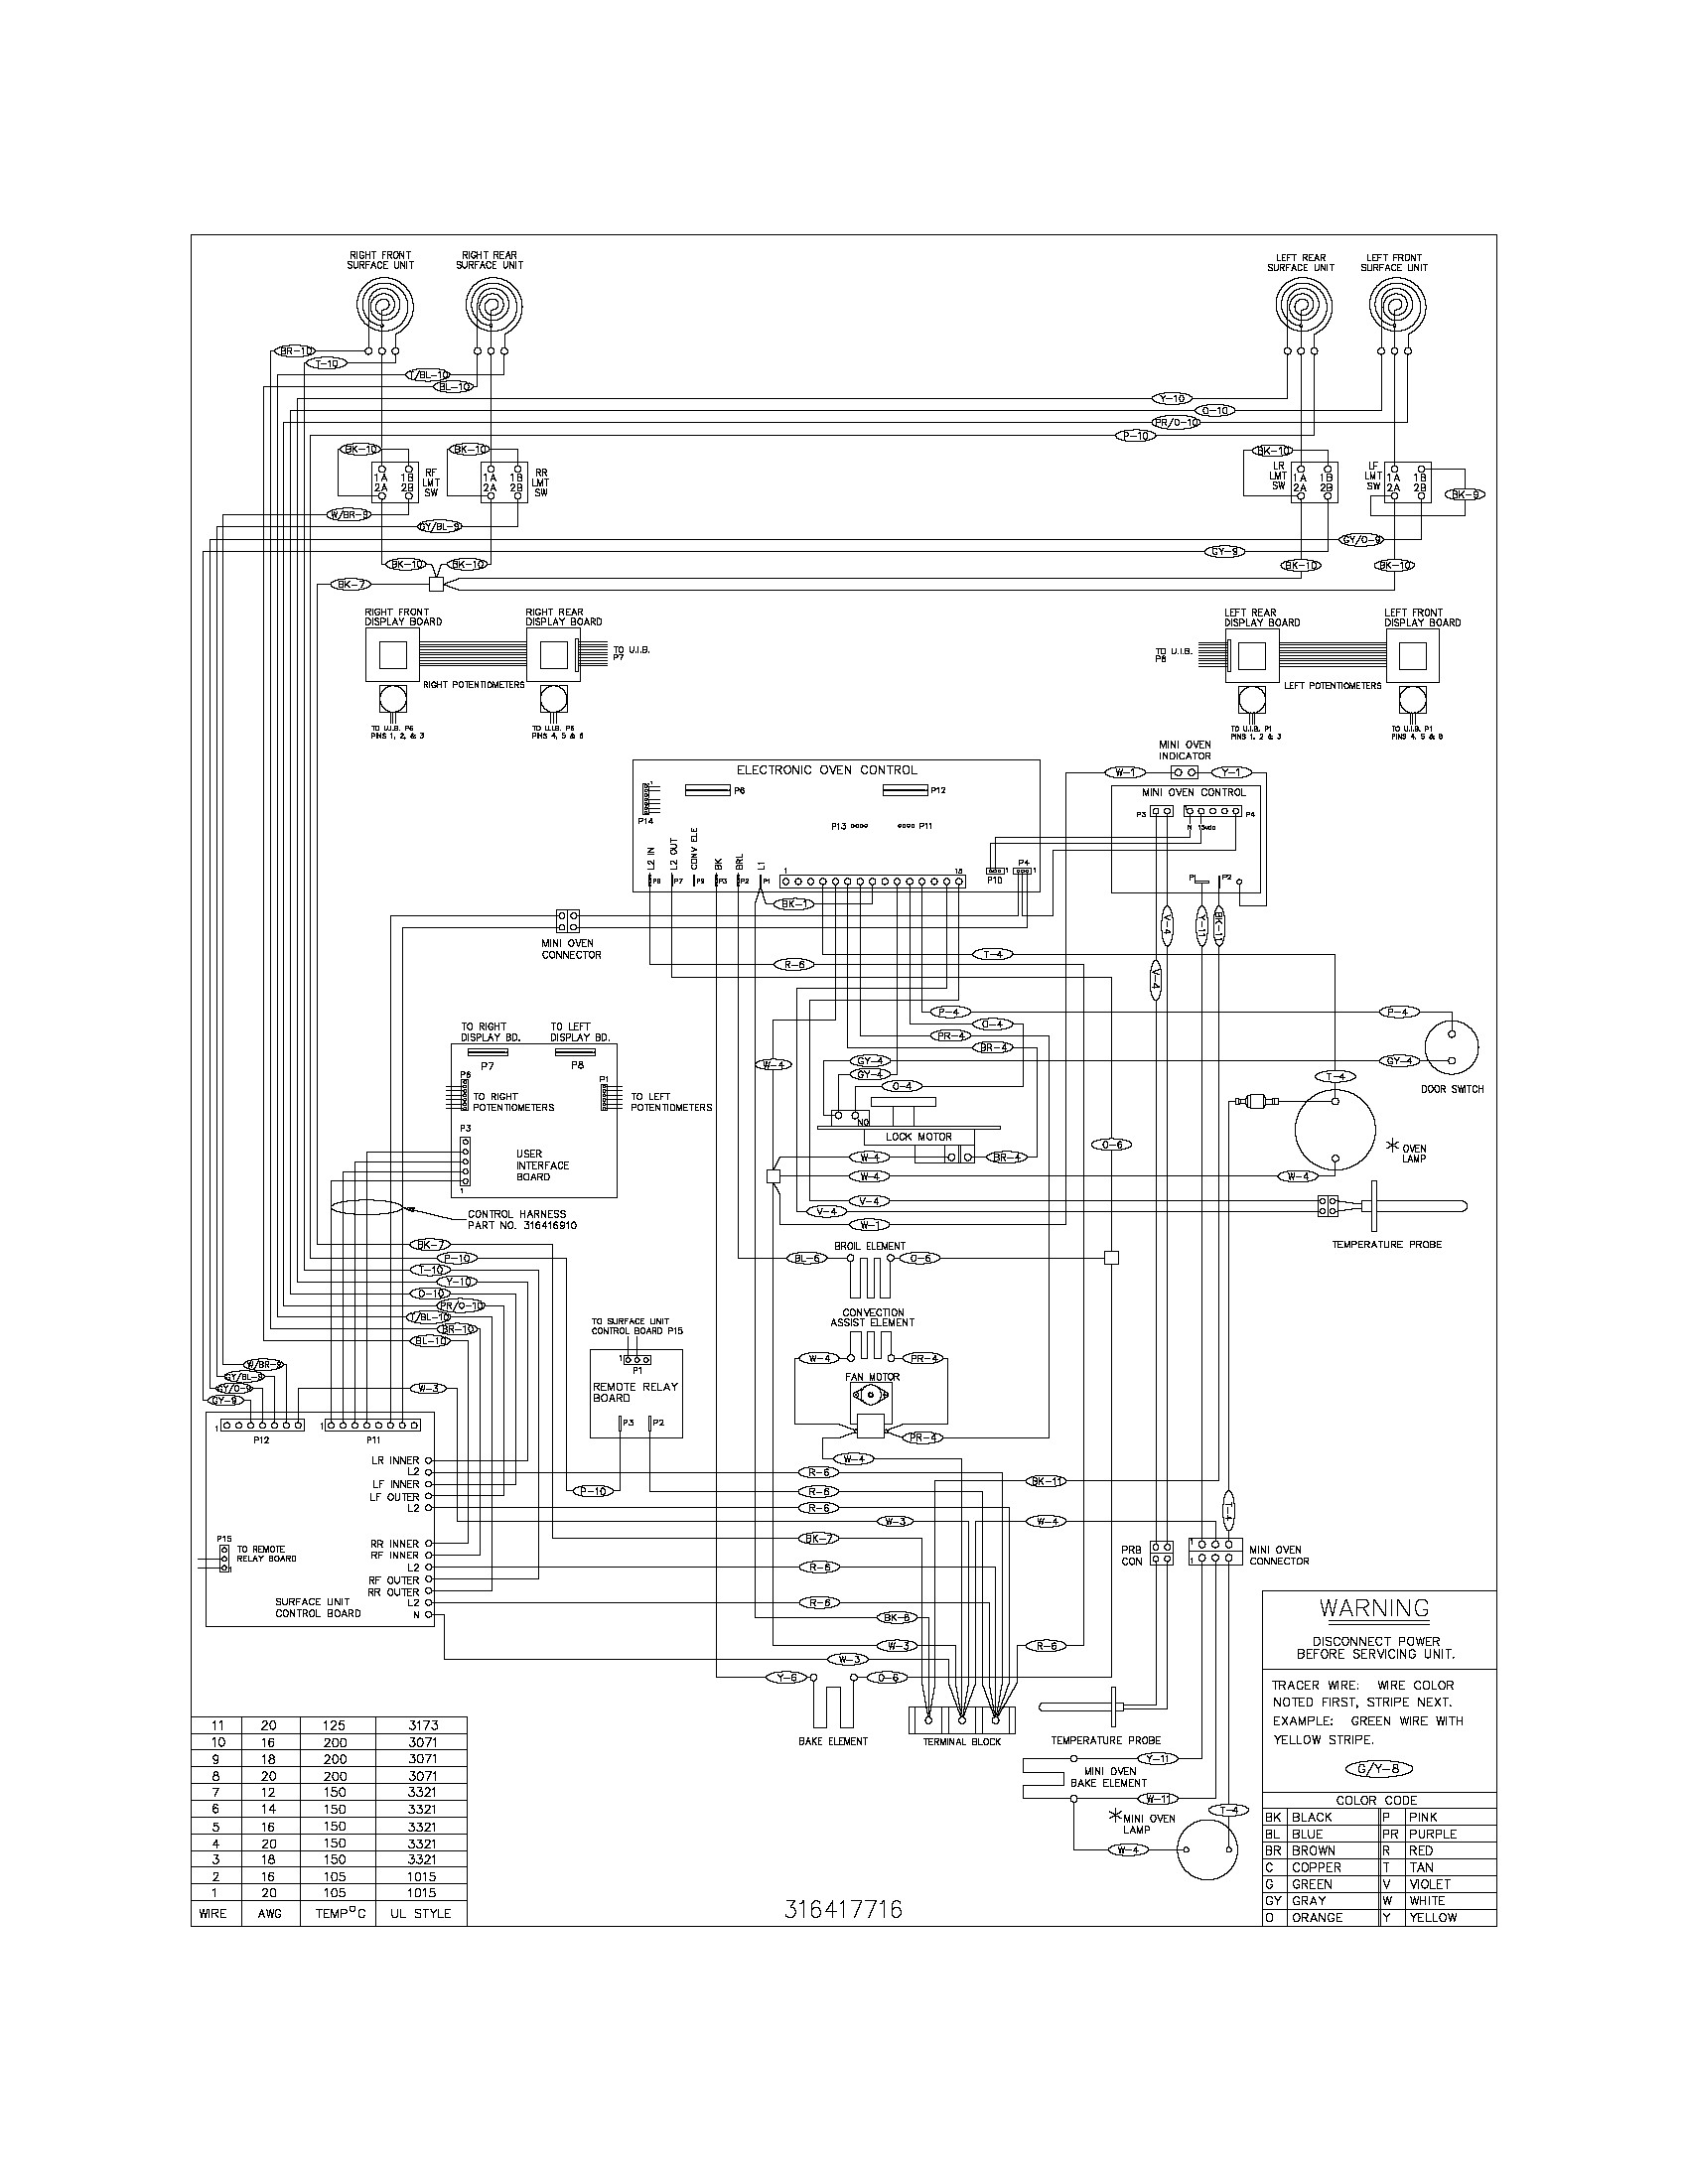 frigidaire cooktop wiring diagram explained wiring diagrams rh sbsun co frigidaire stove top wiring diagram frigidaire gallery stove wiring diagram